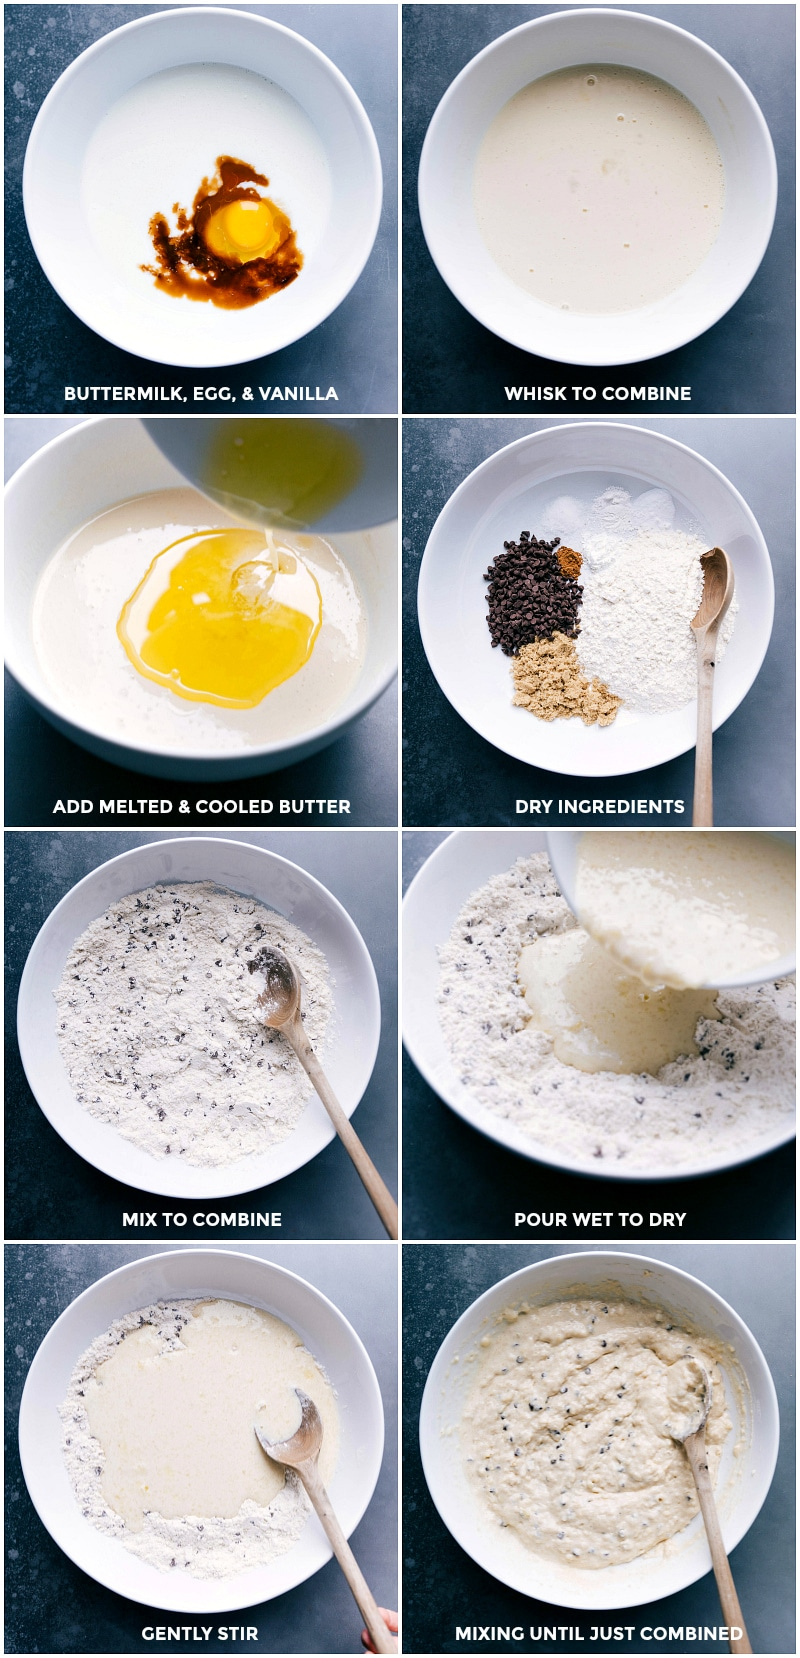 Process shots--mixing the wet and dry ingredients